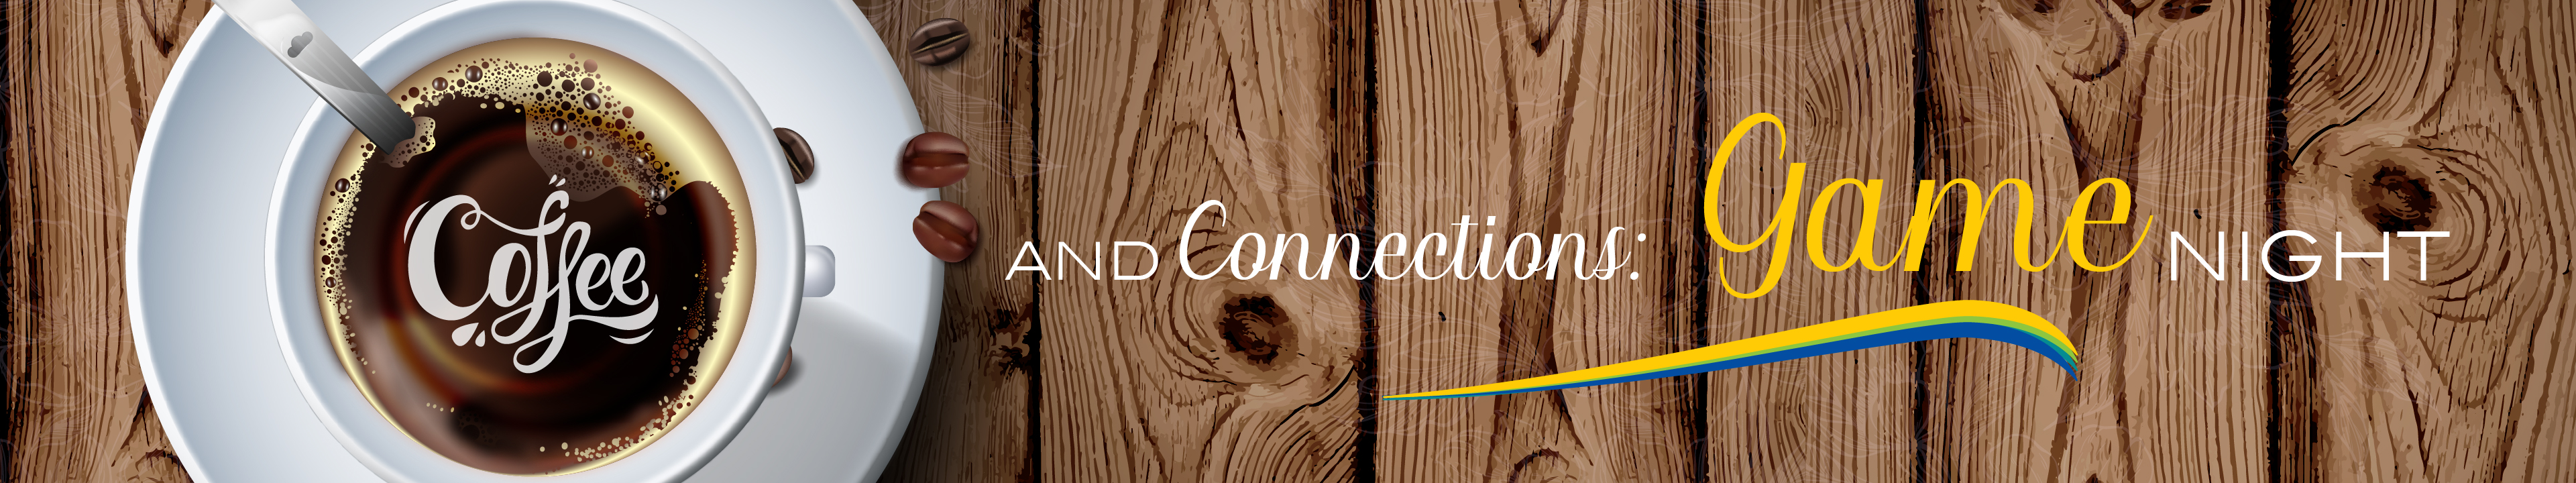 coffee-and-connections-6brd-dq2019-slim-banner